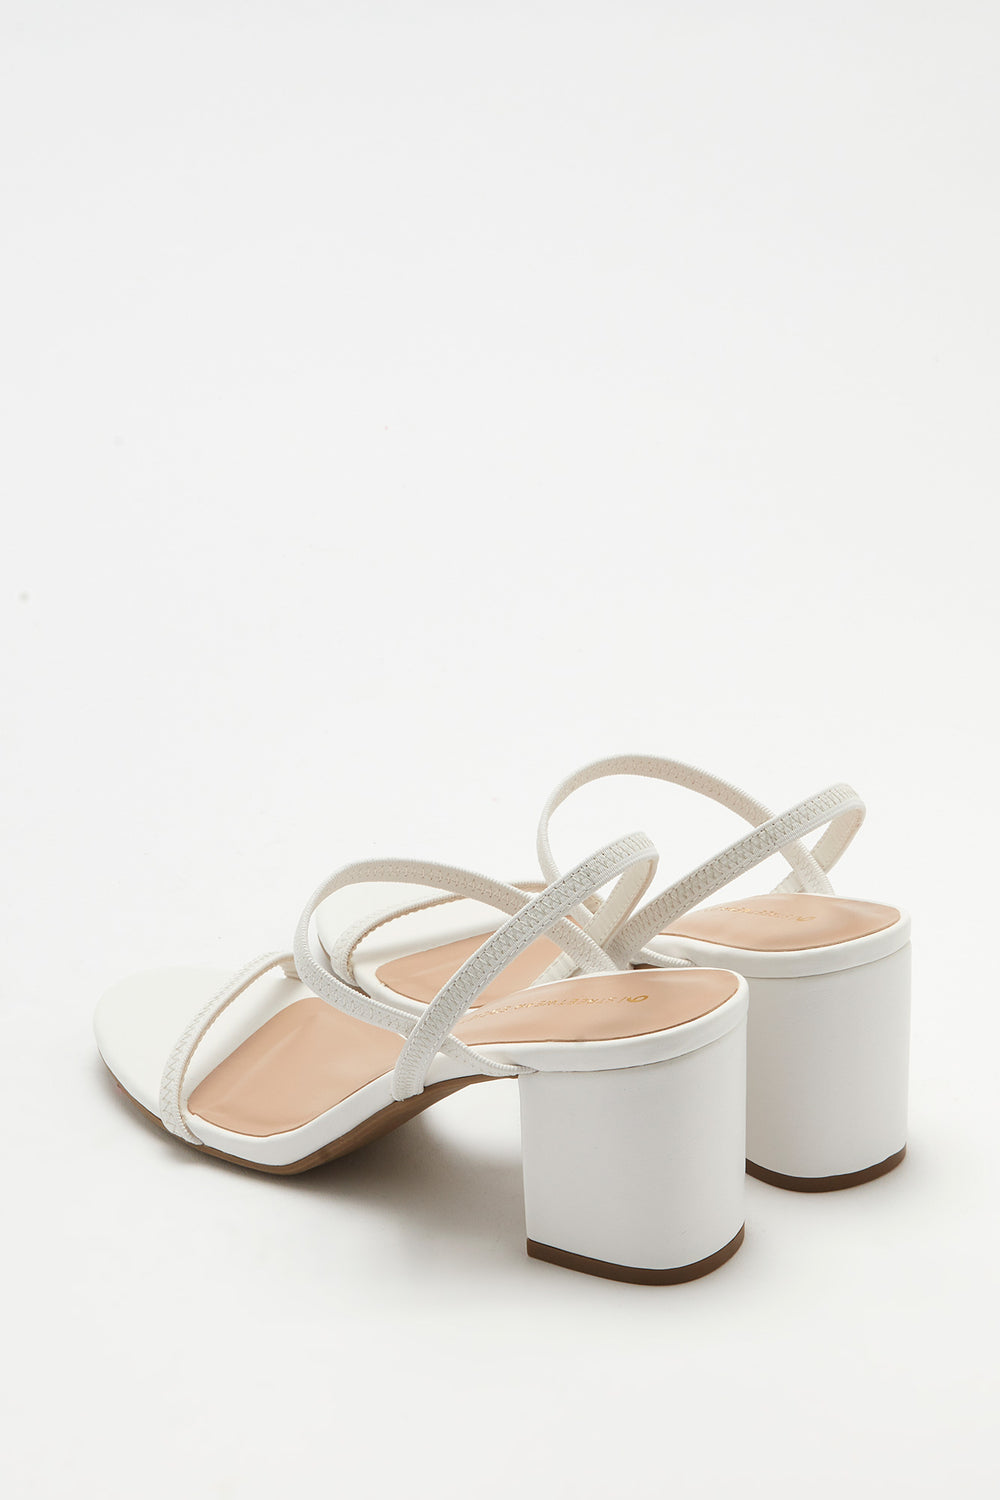 Strappy Mid Block Heel Sandal White